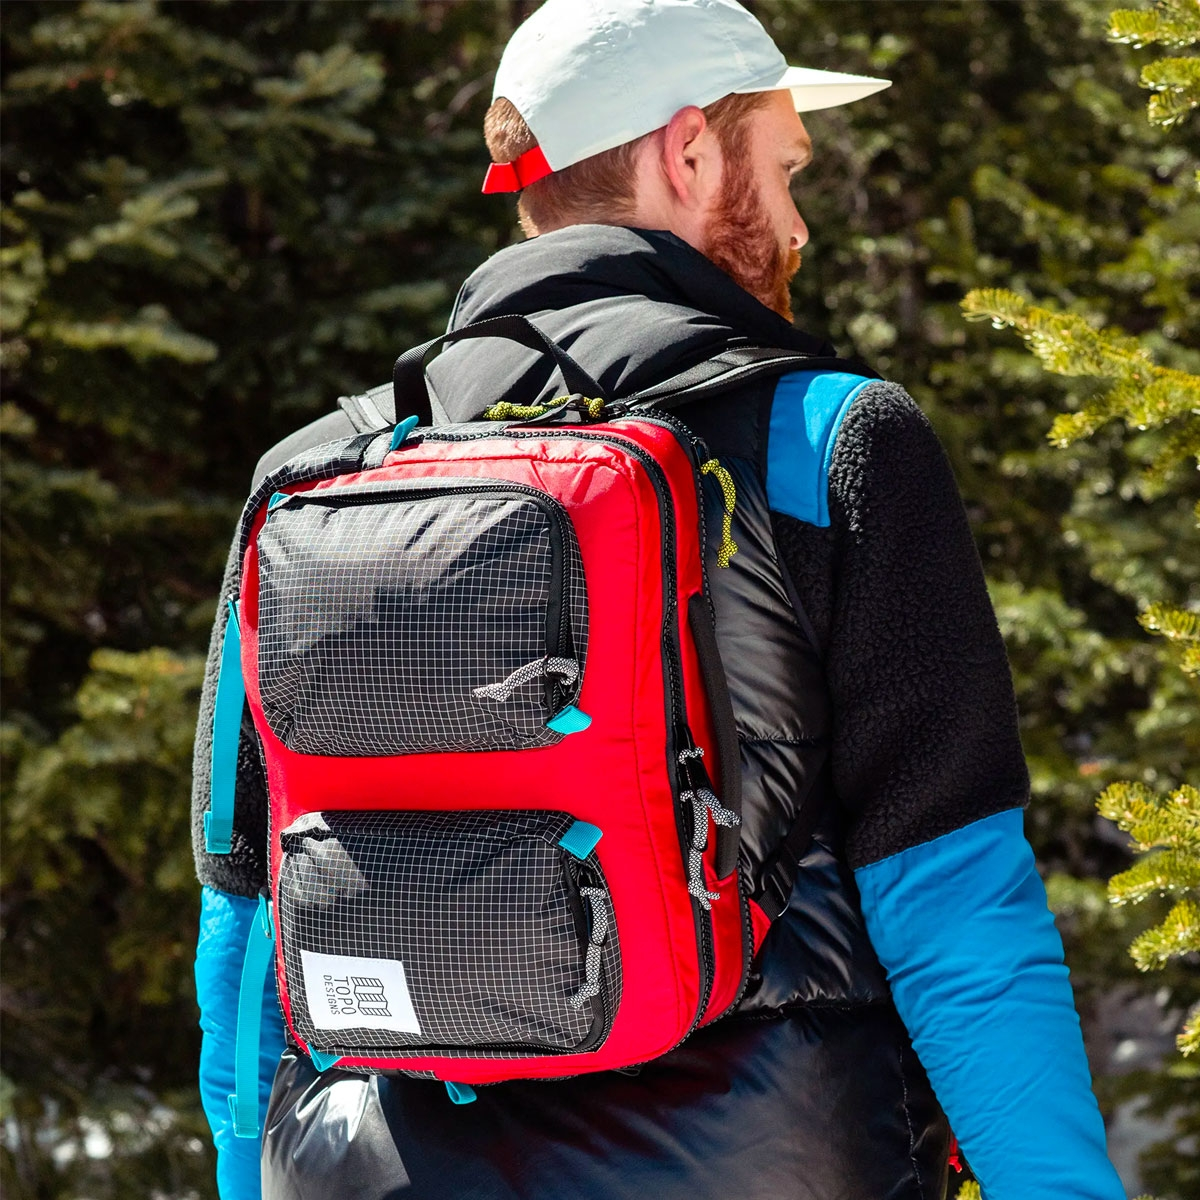 Topo Designs Global Briefcase Red/Black, the perfect bag for everyday carry